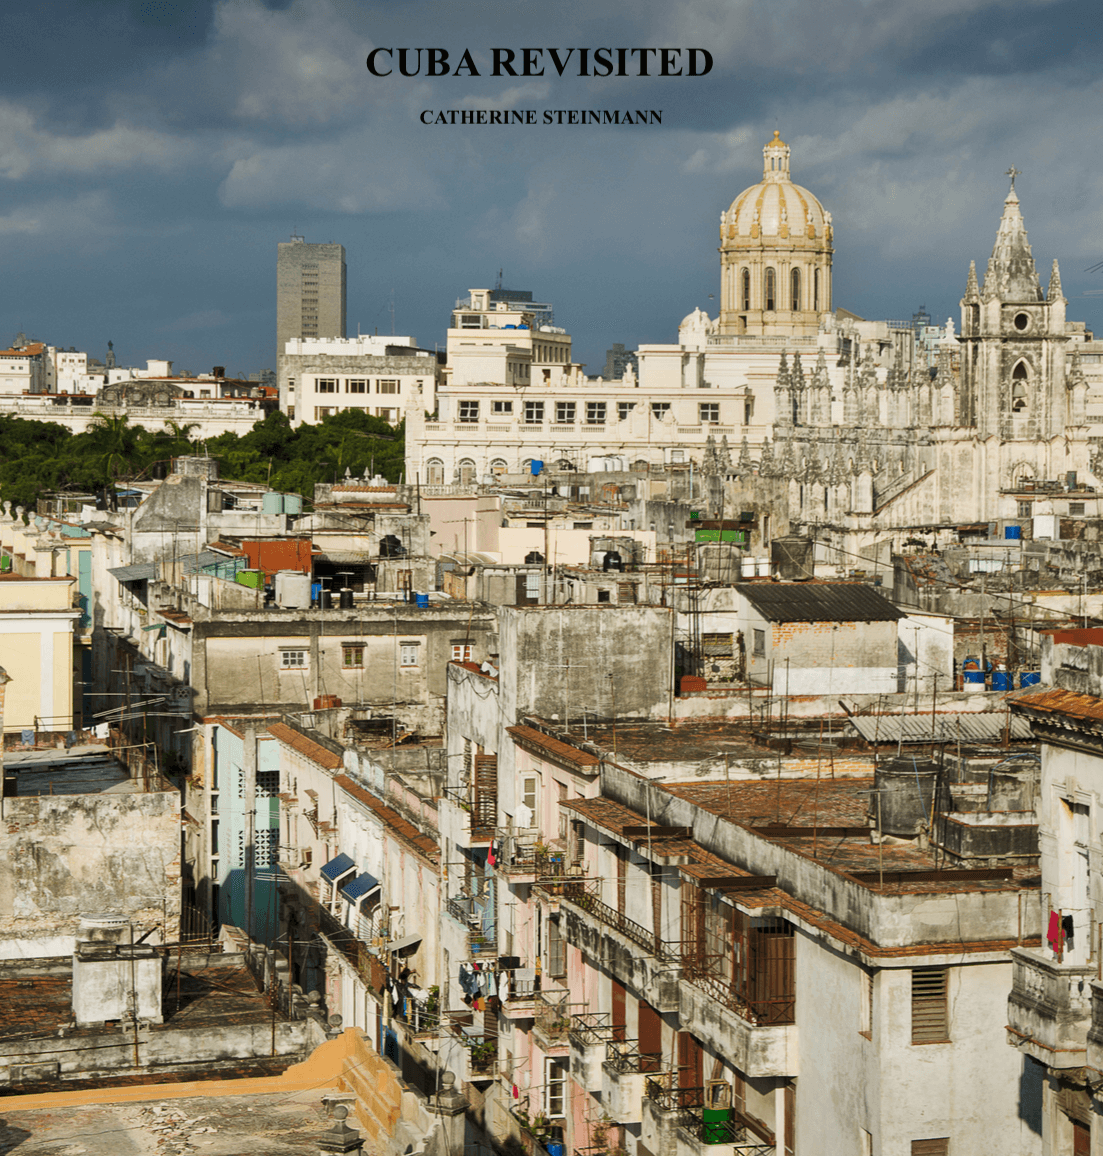 Cuba Revisited